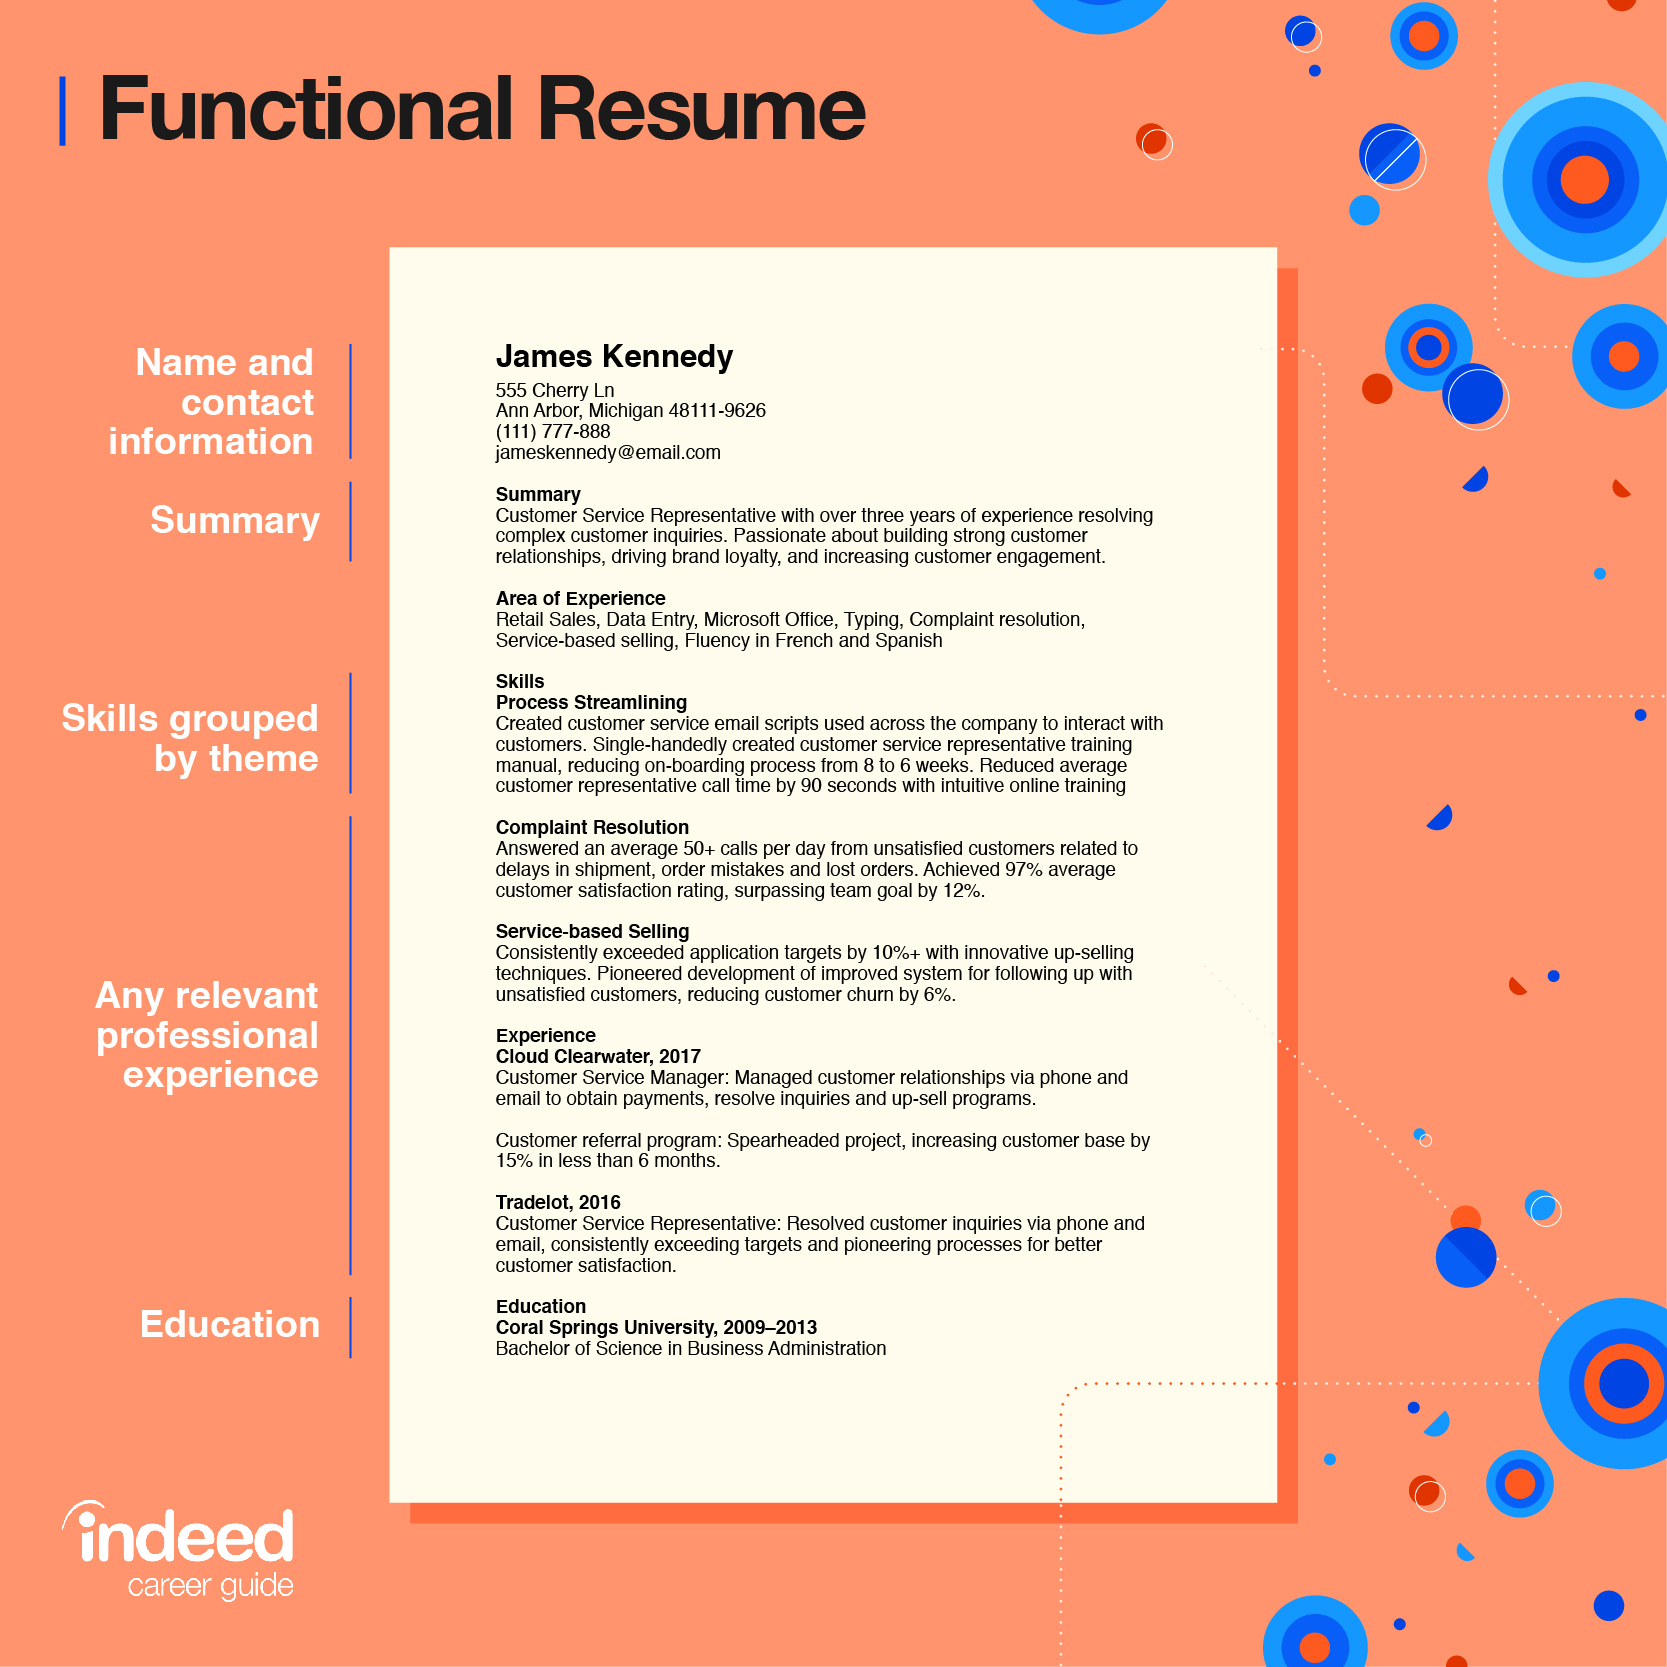 Resume Format Guide With Tips And Examples